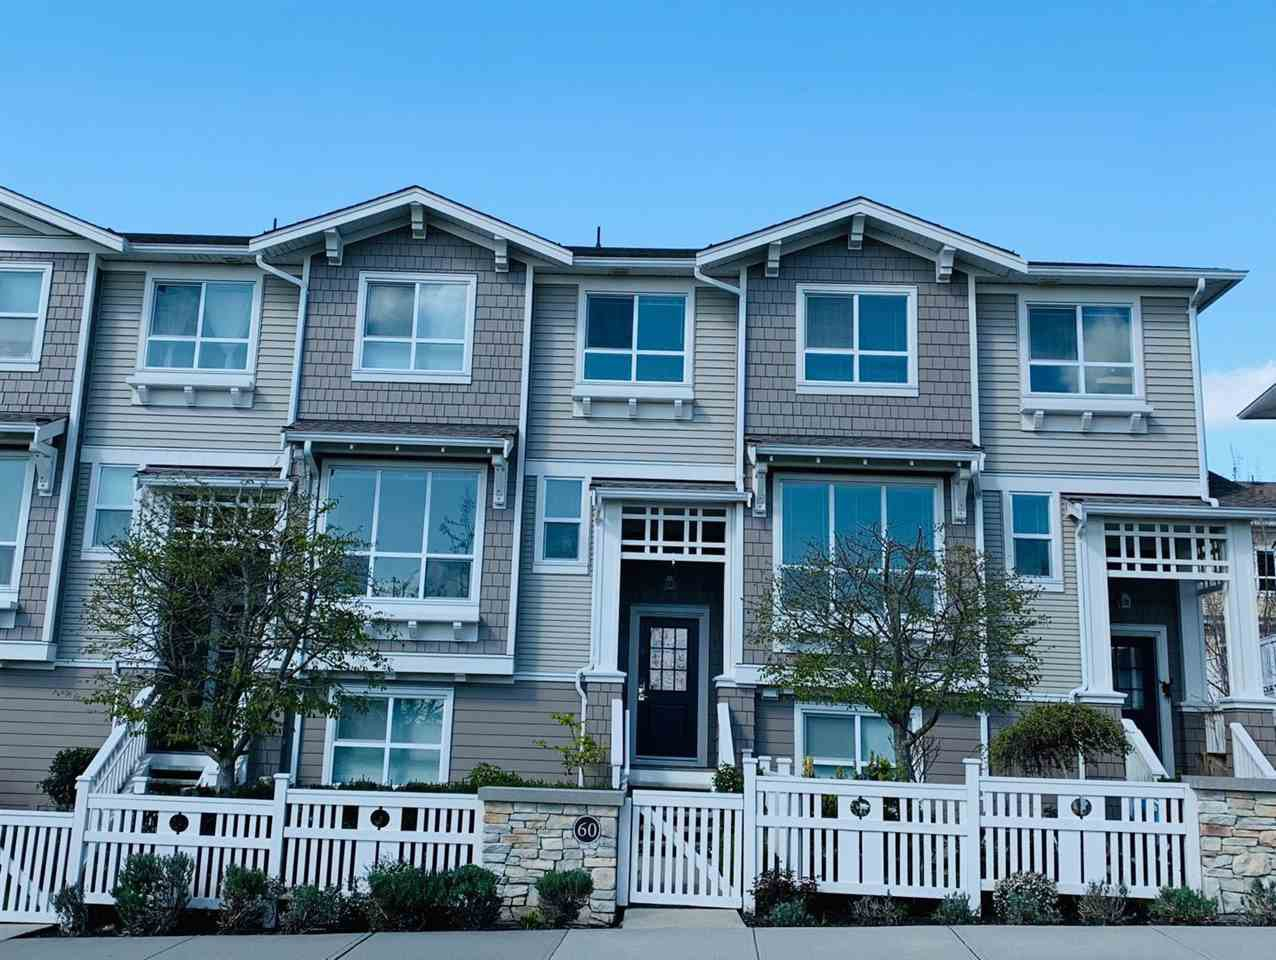 """Main Photo: 60 8355 DELSOM Way in Delta: Nordel Townhouse for sale in """"SPYGLASS AT SUNSTONE"""" (N. Delta)  : MLS®# R2432860"""